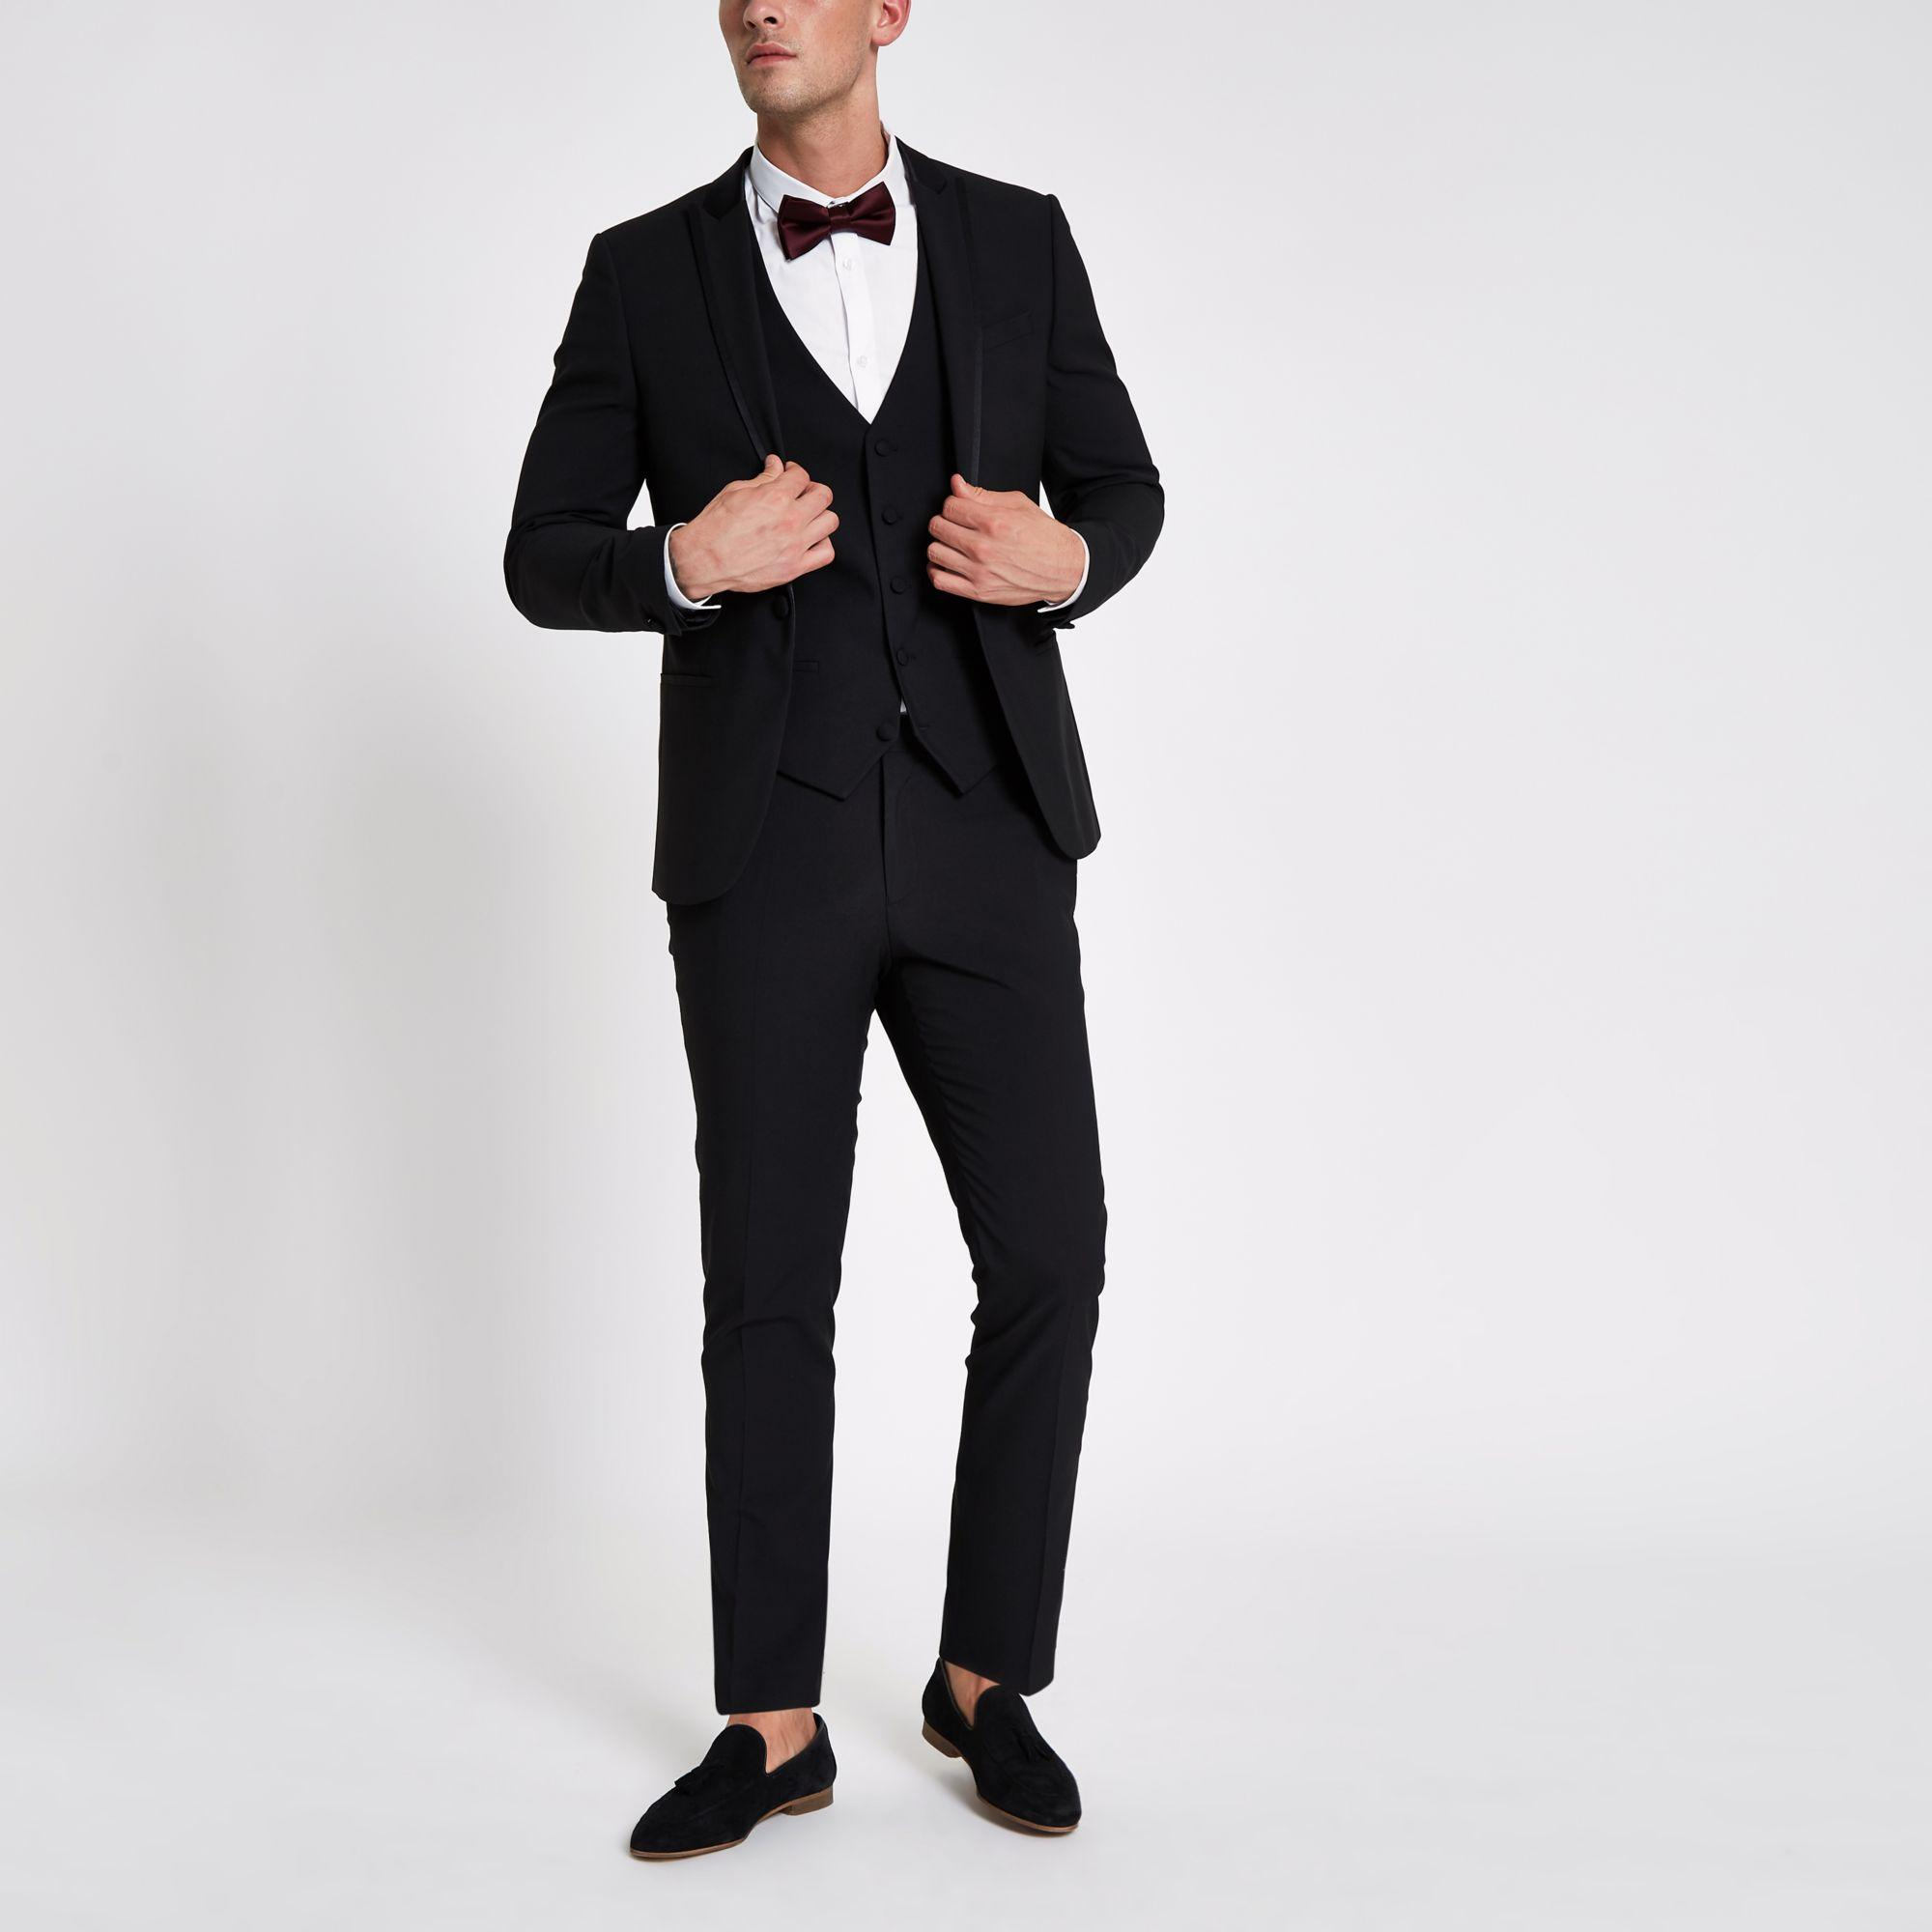 River Island Satin Lapel Skinny Fit Suit Jacket in Black for Men